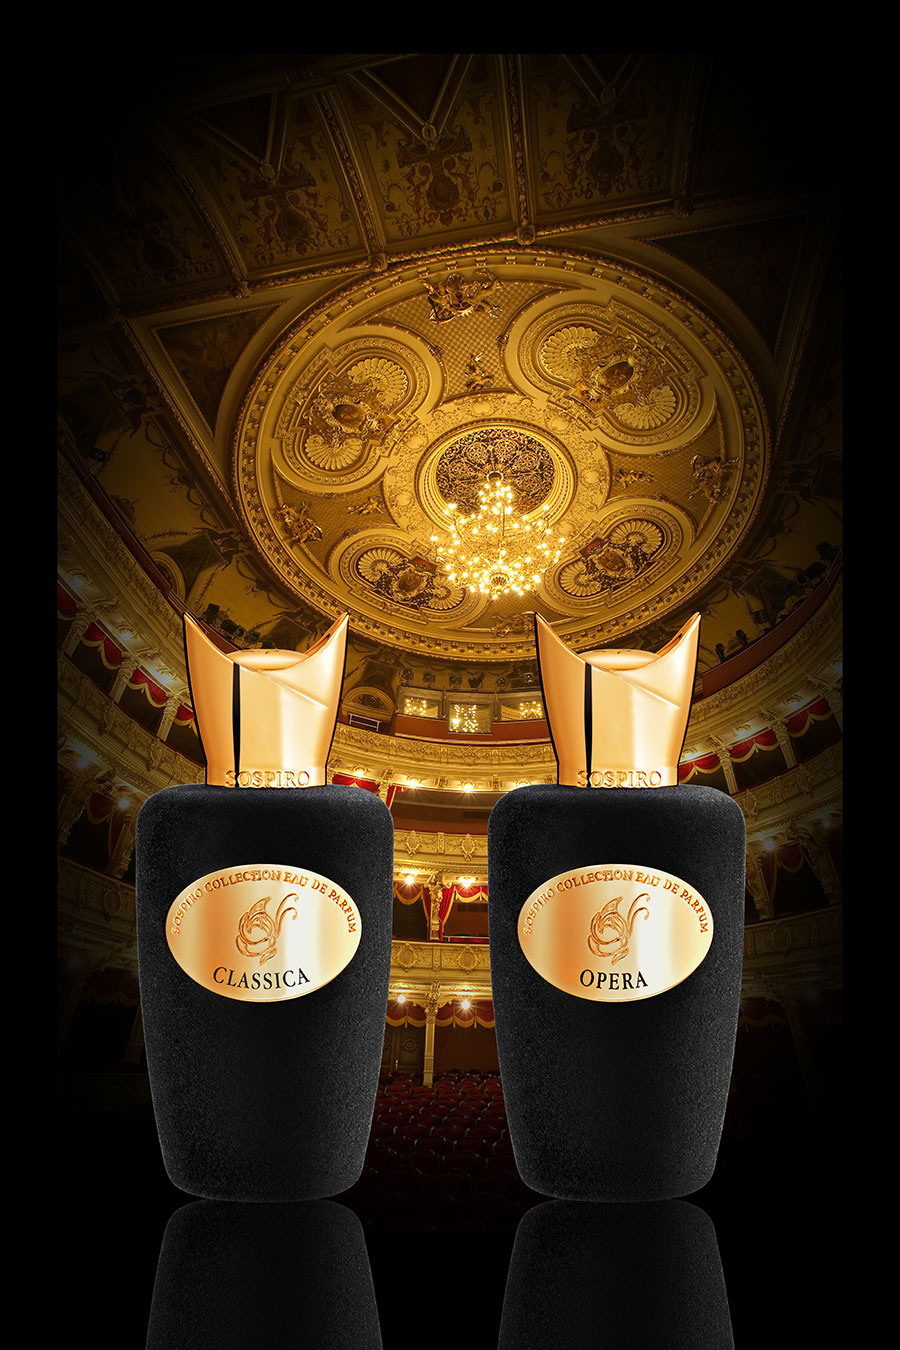 Opera Sospiro Perfumes Perfume A Fragrance For Women And Men 2014